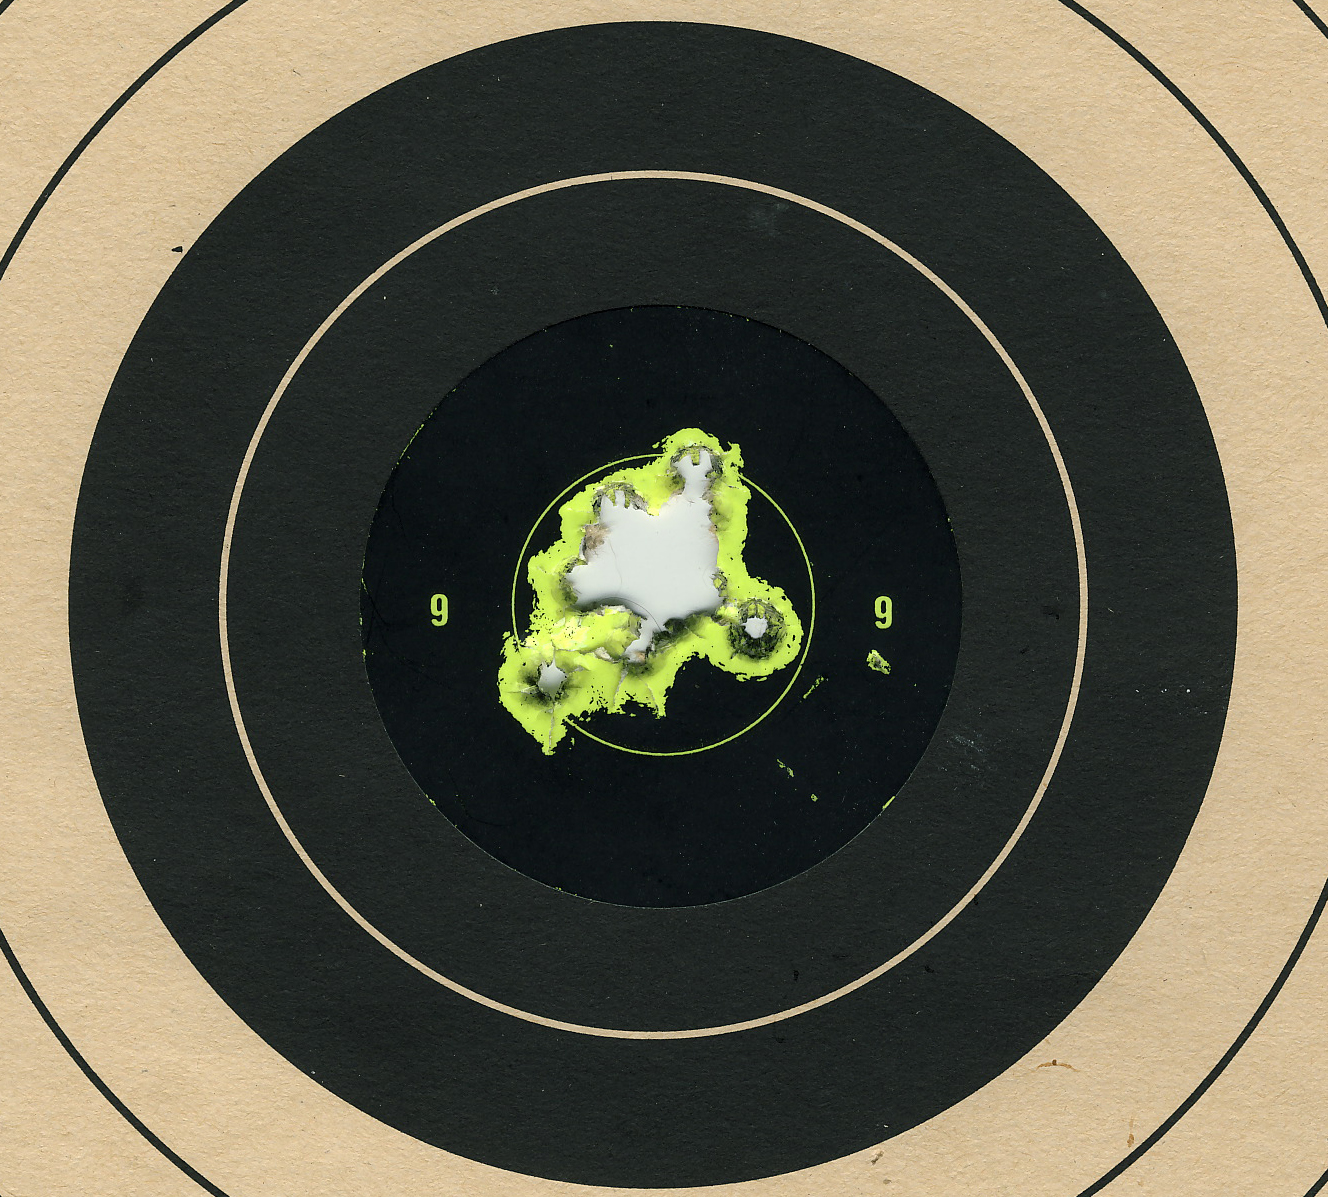 image about Free Printable Turkey Shoot Targets known as Capturing emphasis - Wikipedia